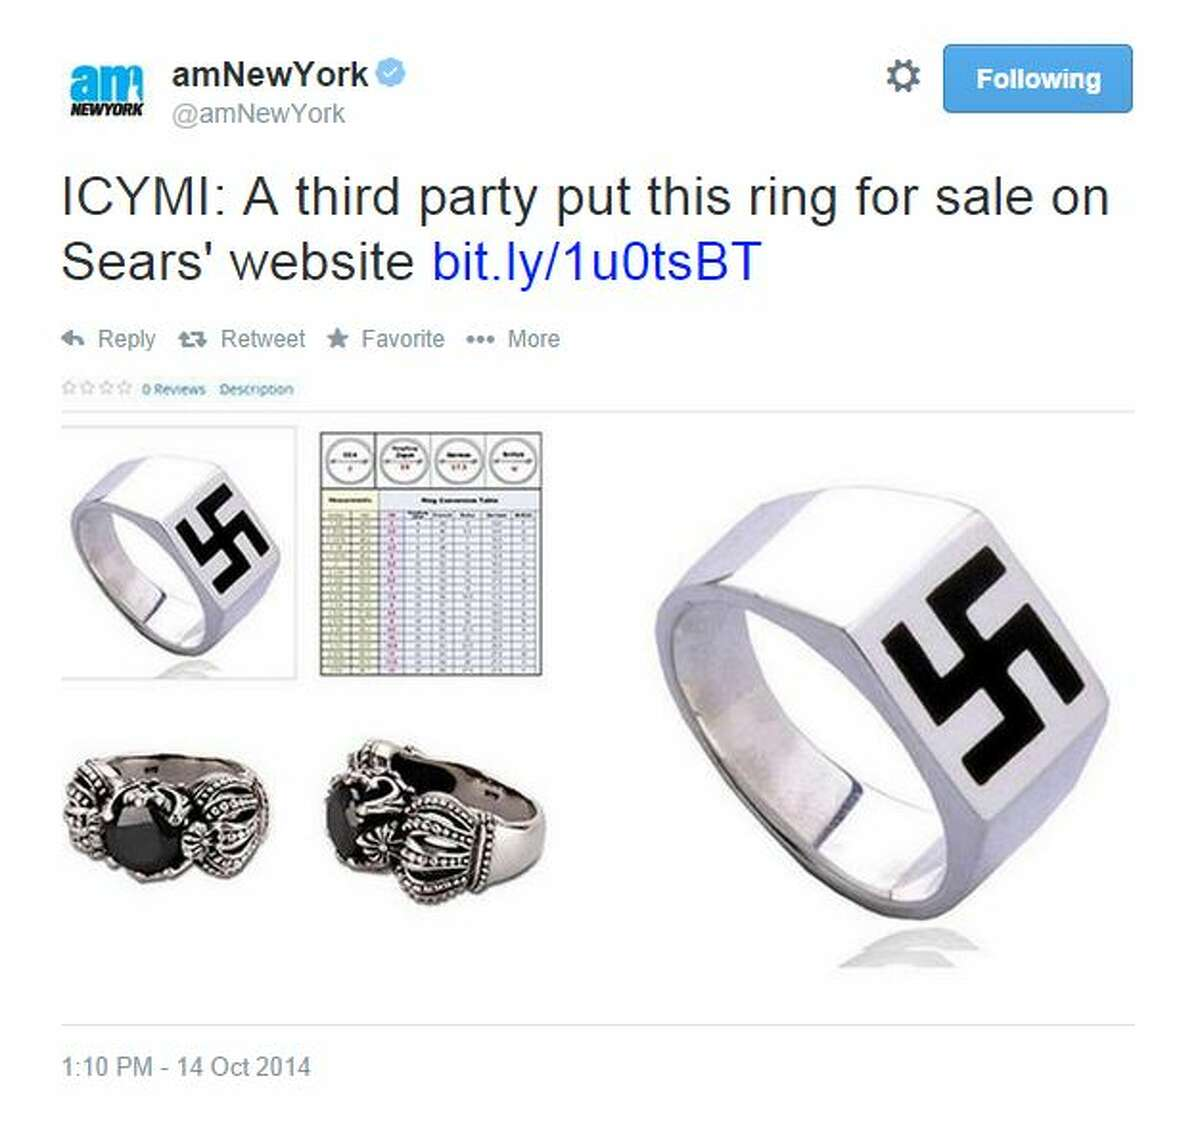 """@amNewYork tweeted this screenshot of the swastika ring page on Sears' website. """"ICYMI: A third party put this ring for sale on Sears' website"""""""